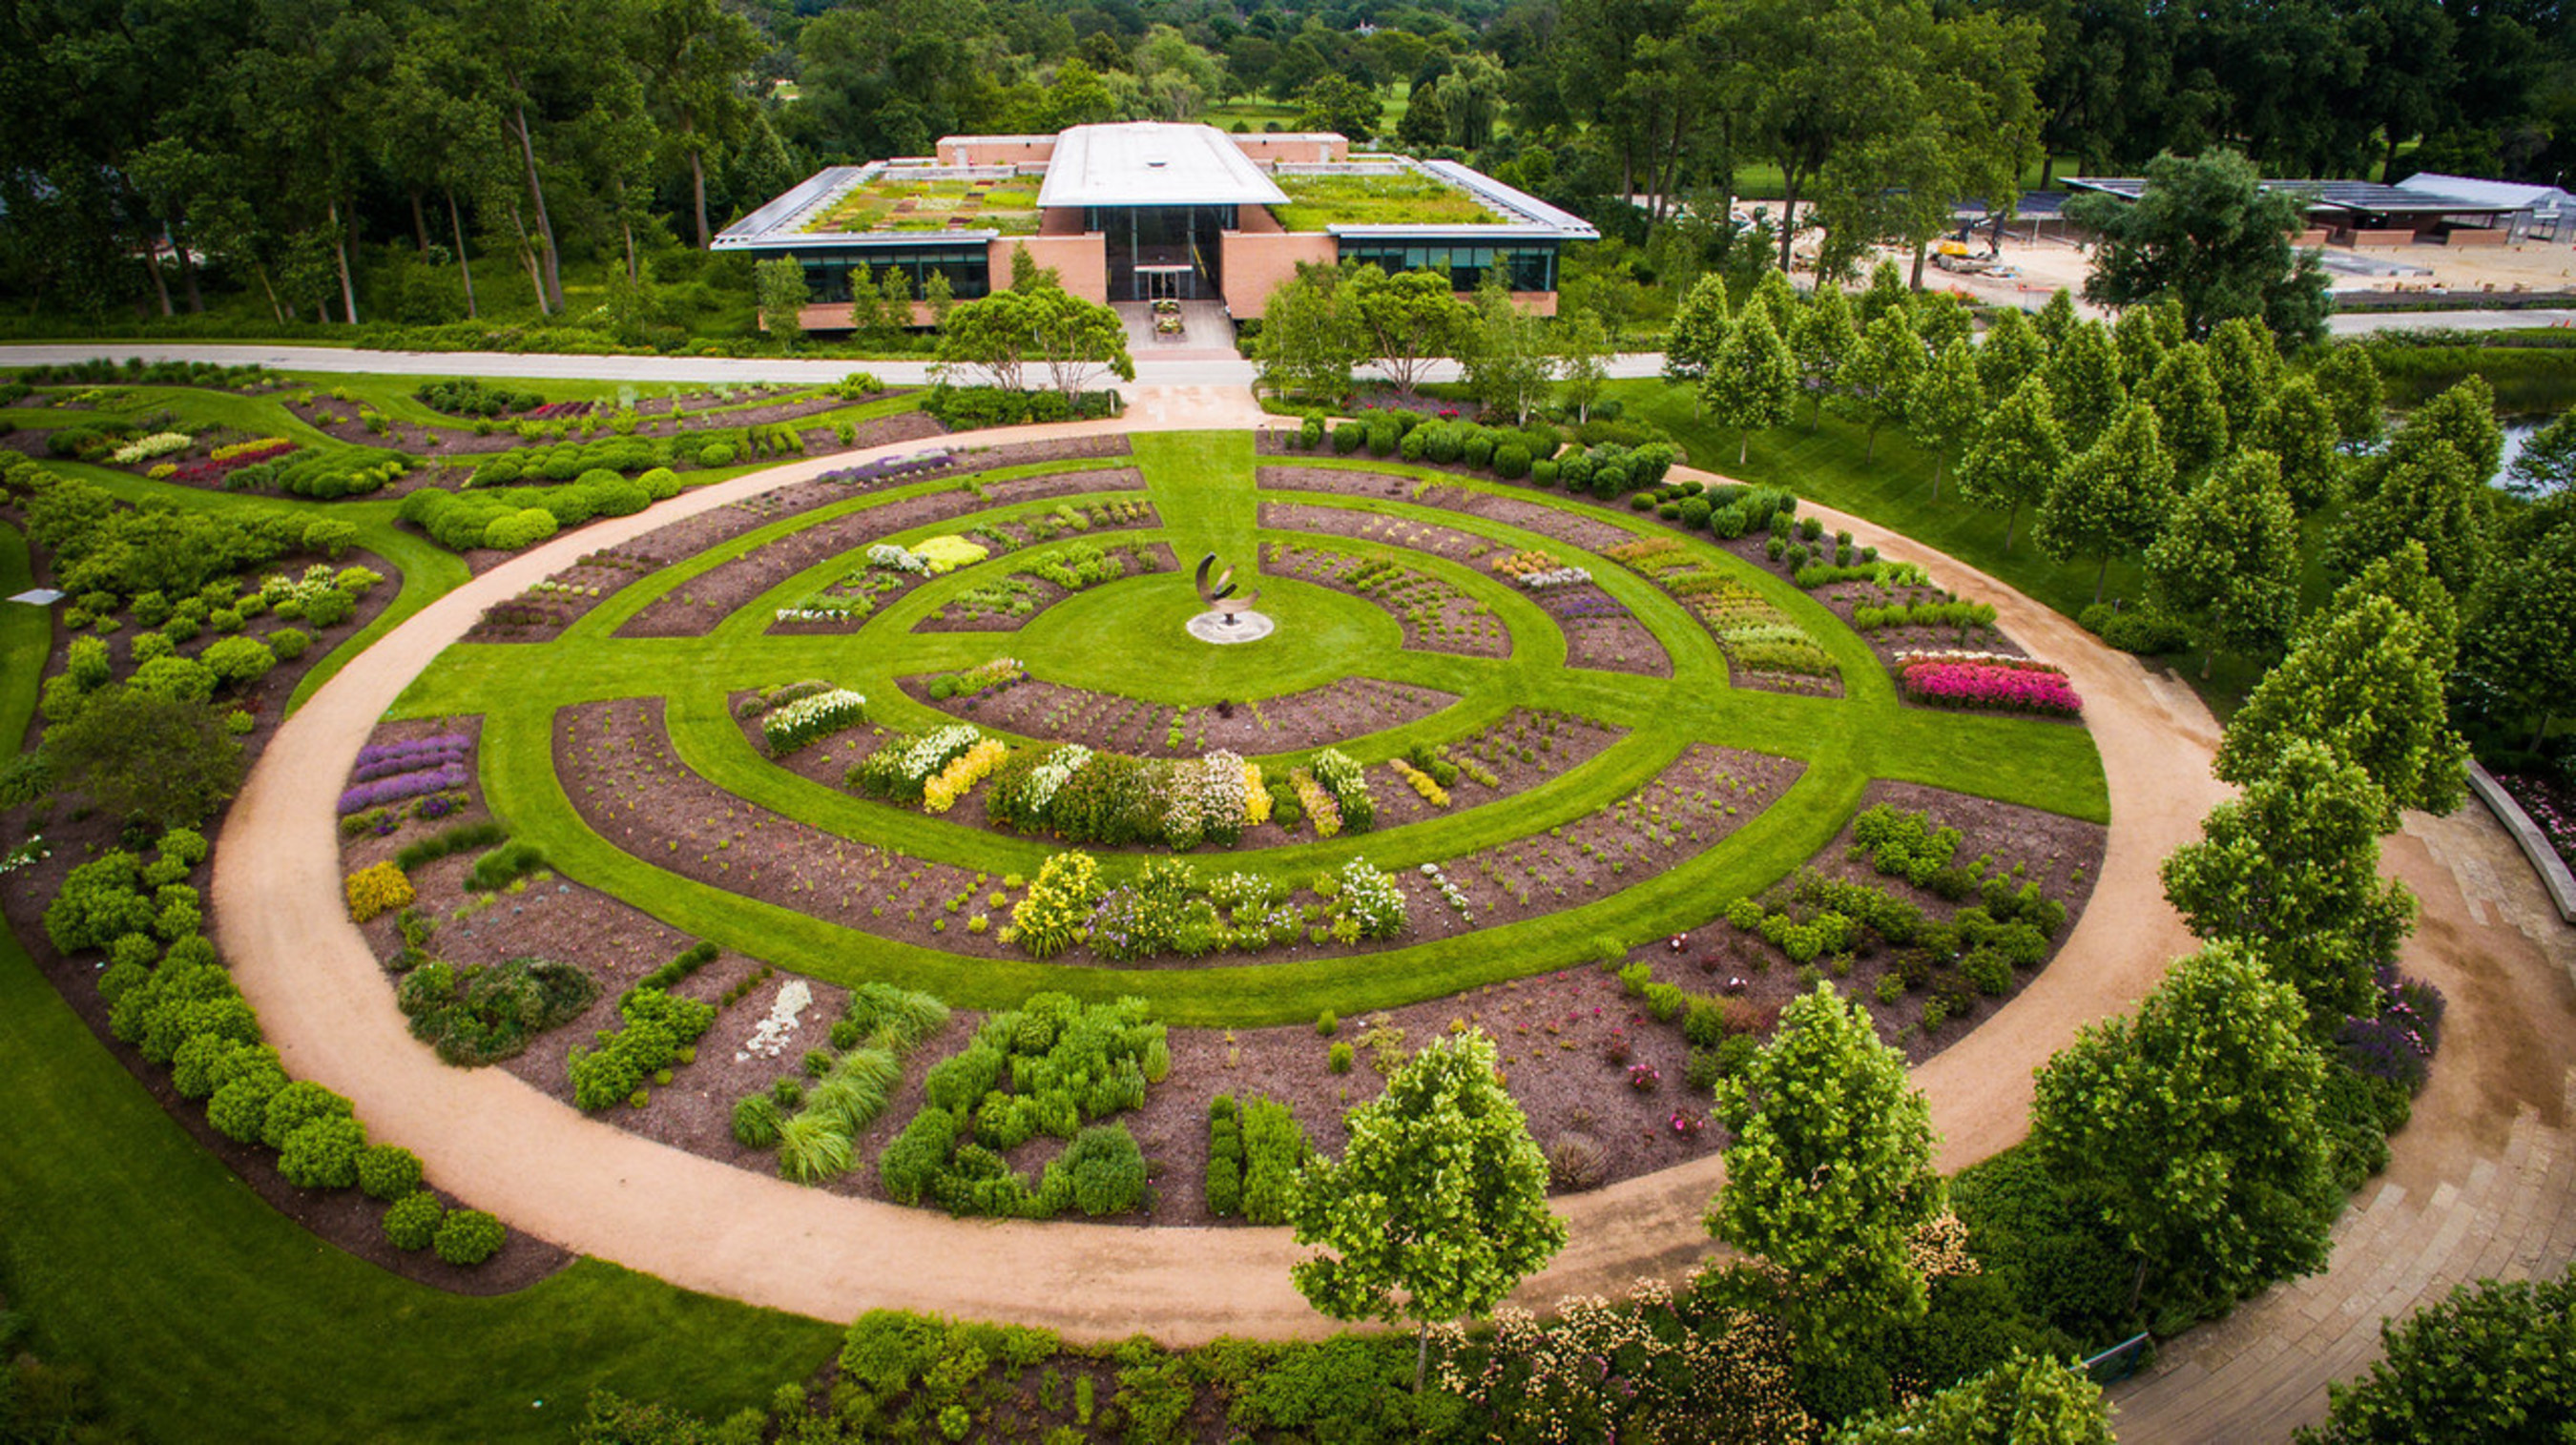 The largest study in USA of green roof plants, released by the Chicago Botanic Garden.  Overview of 16,000 square-foot green roof garden at the Glencoe-based Garden.